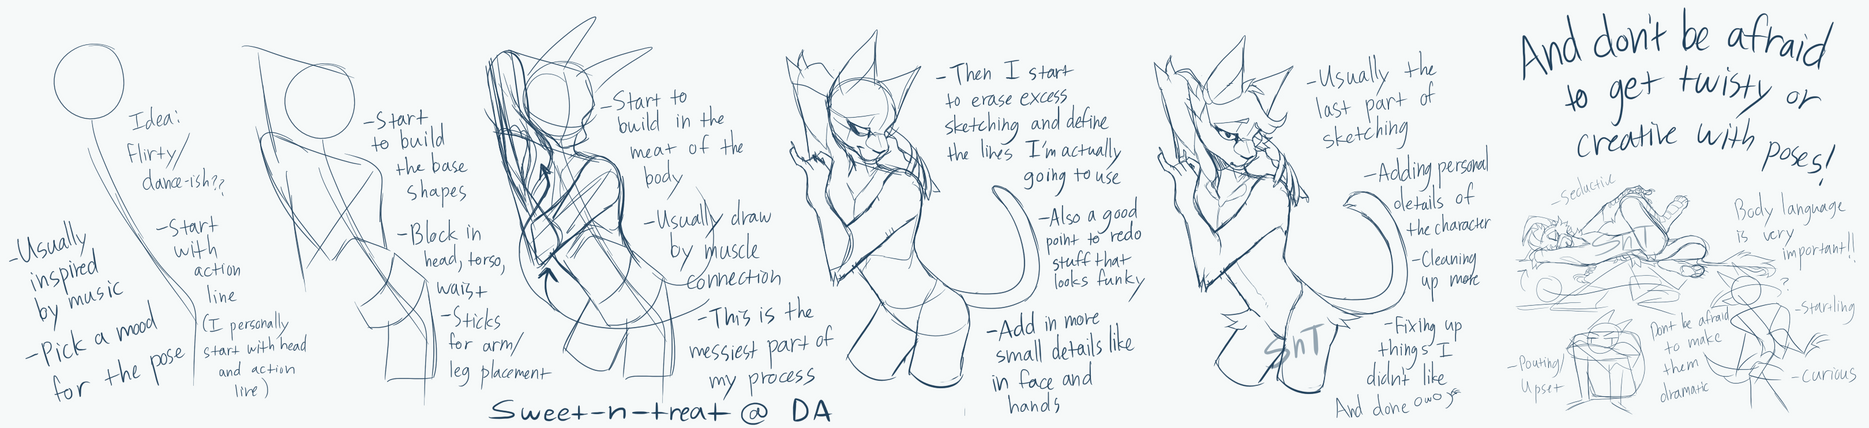 How I build poses by Sweet-n-treat